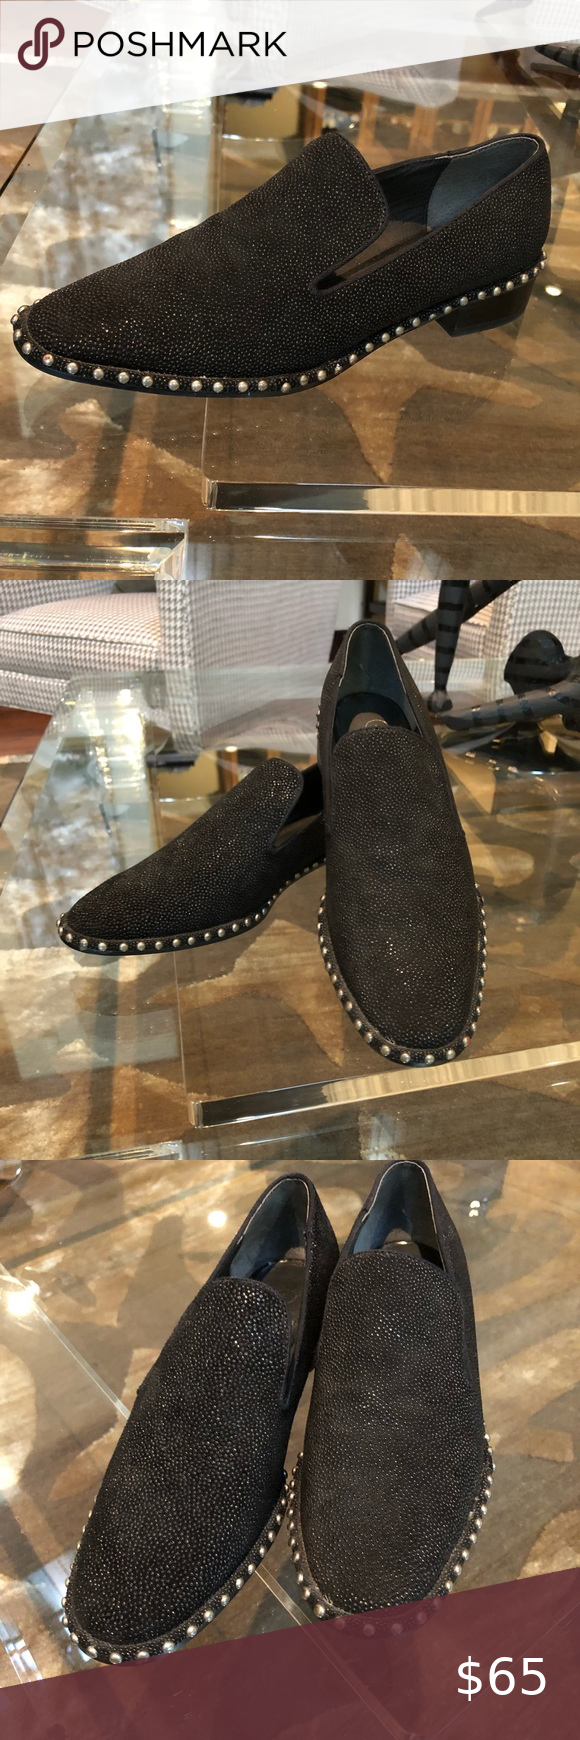 Adrianna Pappel Black Beaded And Studded Loafers Studded Loafers Loafers Black Loafers [ 1740 x 580 Pixel ]